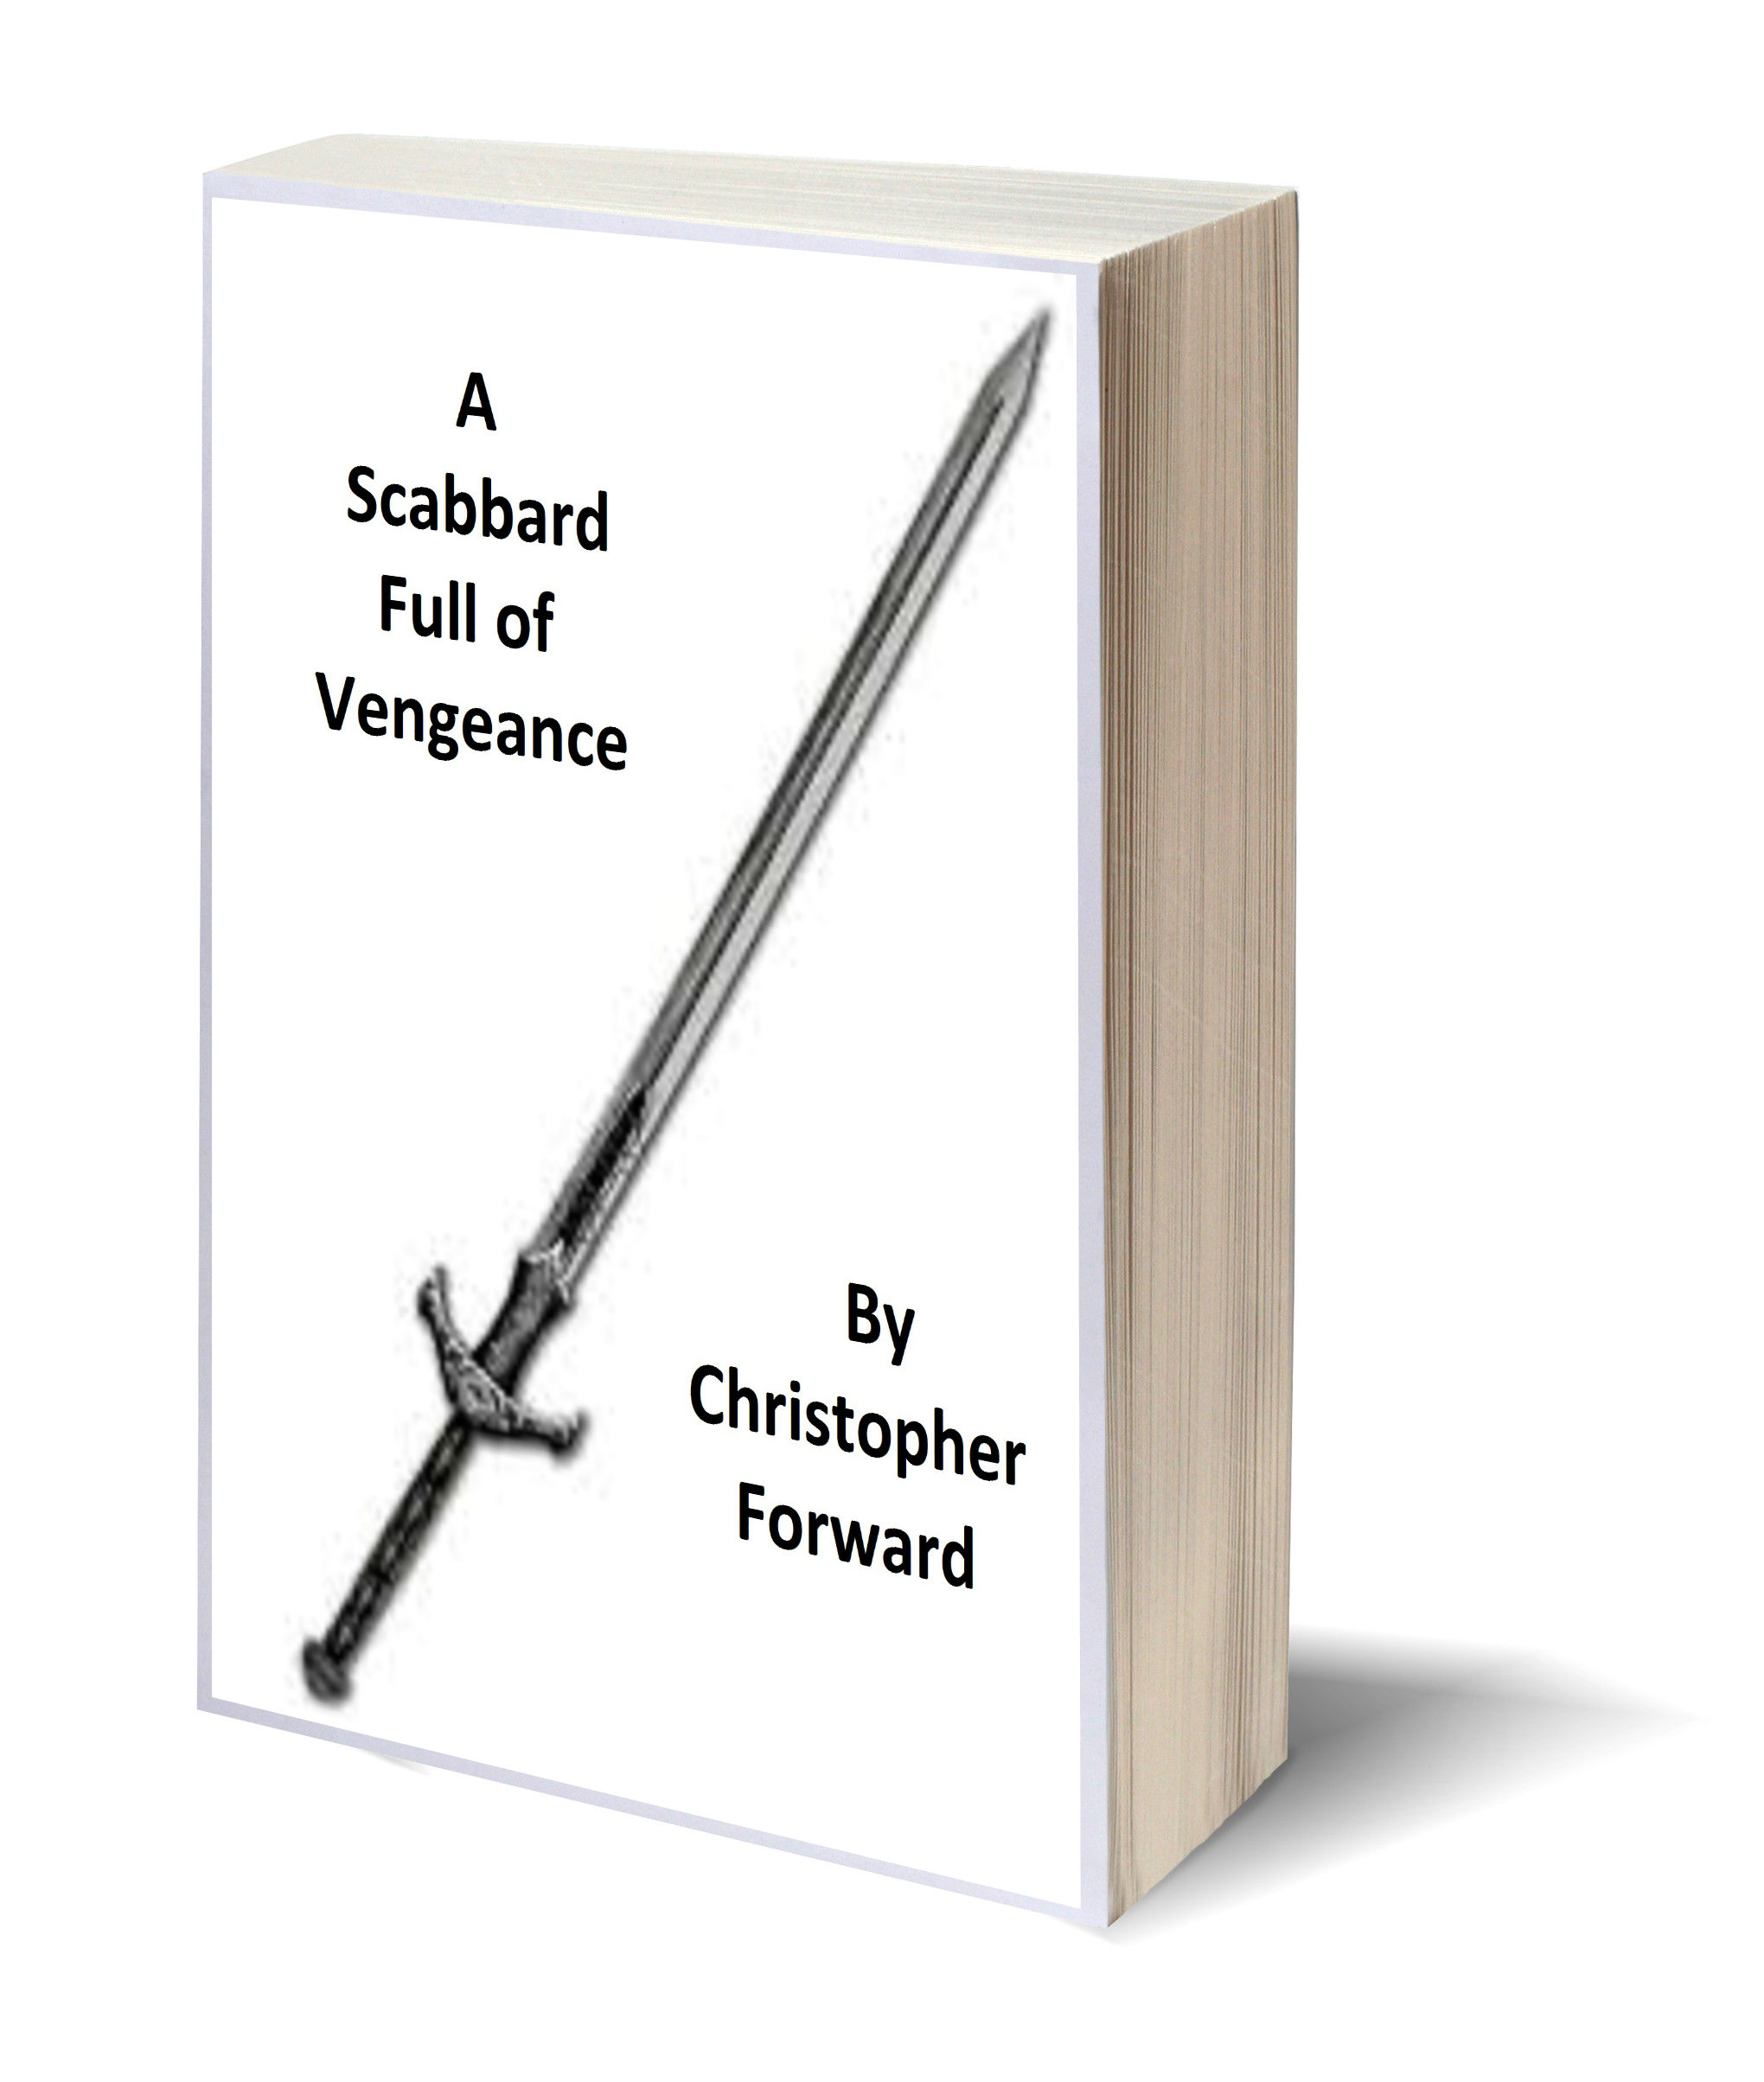 A Scabbard Full of Vengeance 3D-Book-Template.jpg